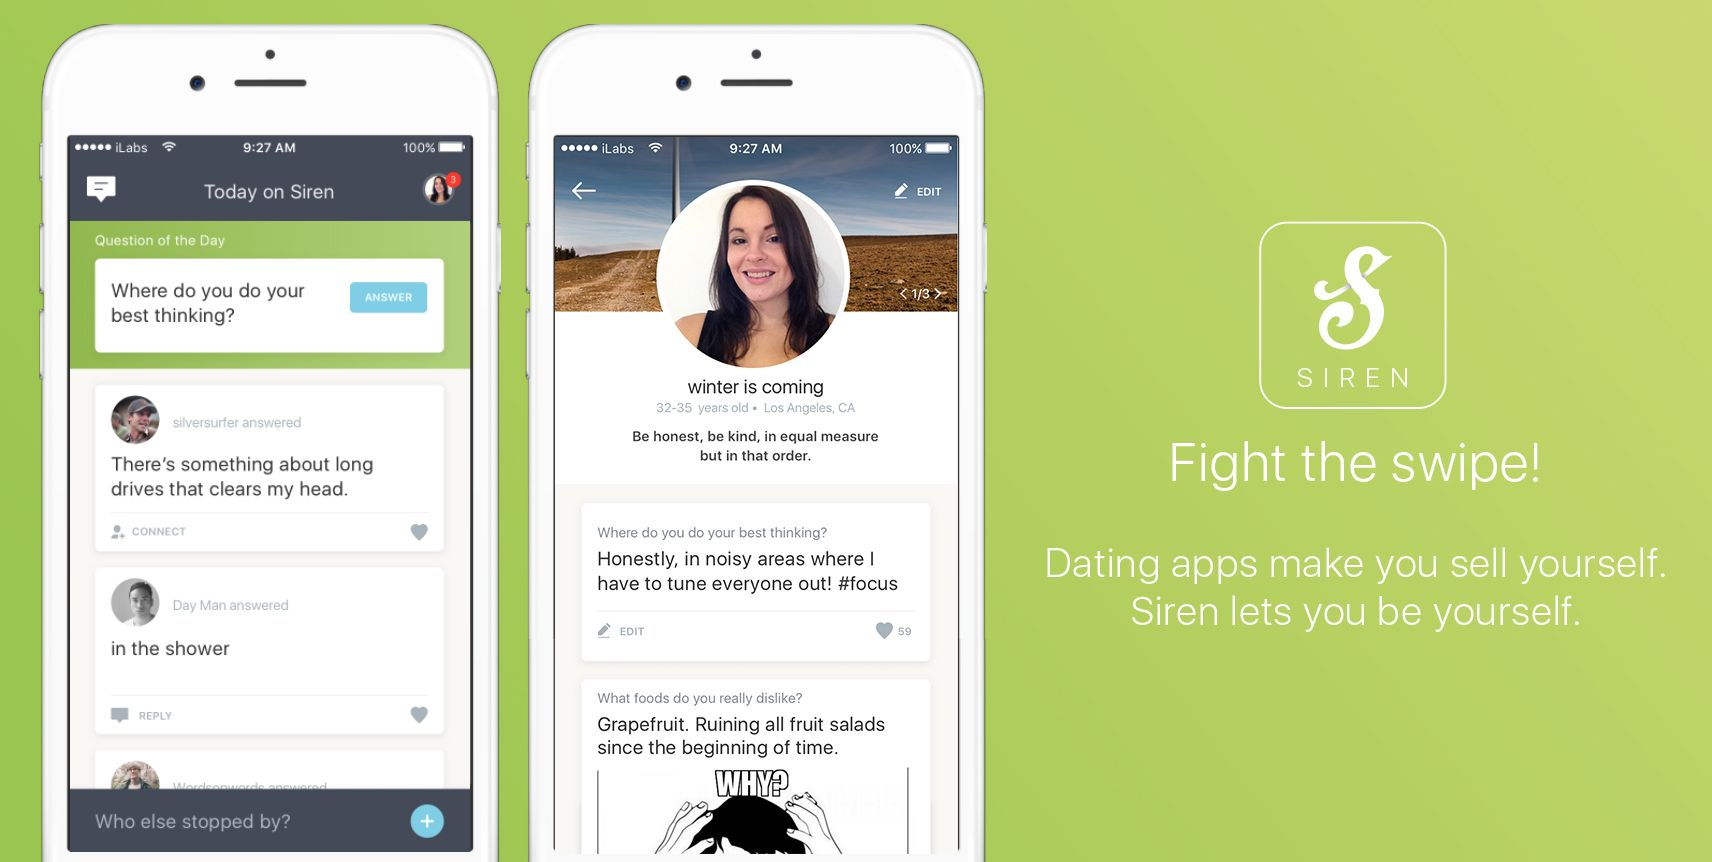 Real People Fight the Swipe Dating apps, Real people